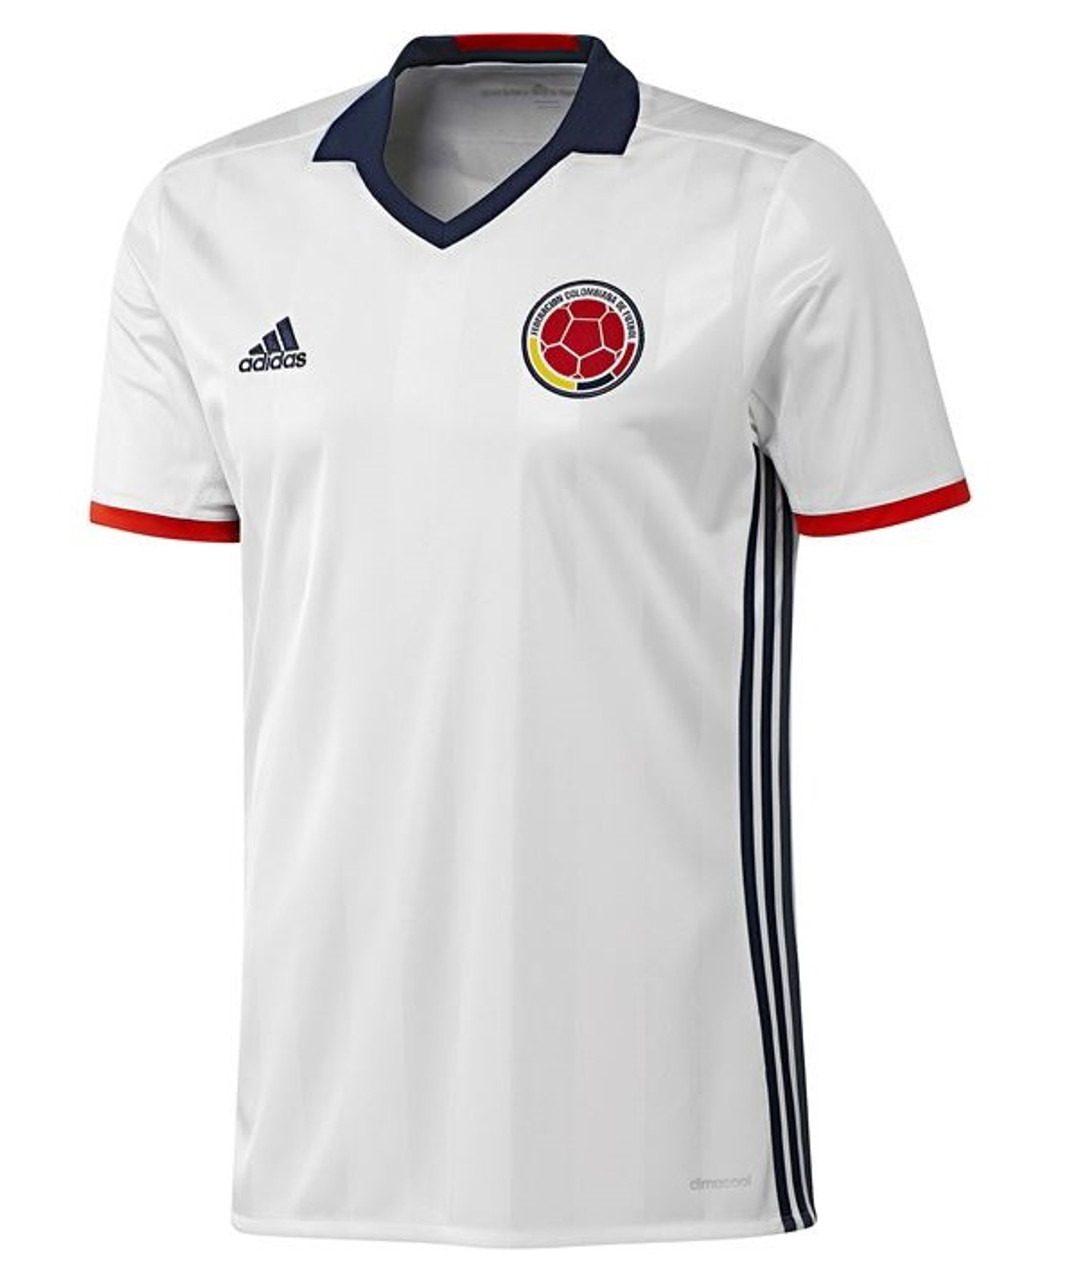 Adidas Mens Colombia Home Jersey - White/Navy/Red (071820) - ohp ...